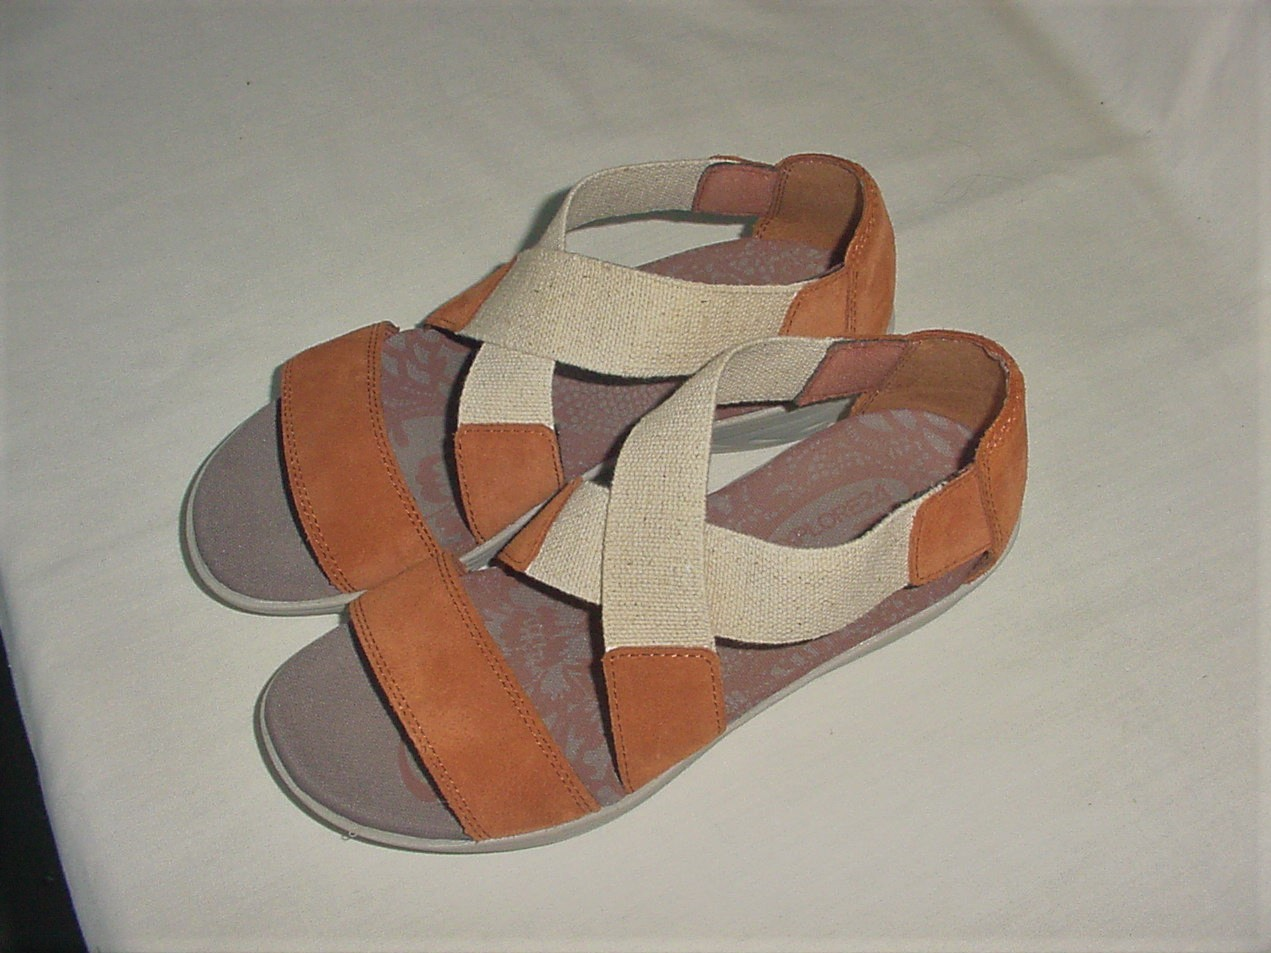 Brand New in Box EASY SPIRIT Express 24 Wedge Sandals Retail $79 Size 5.5 M - $50.00